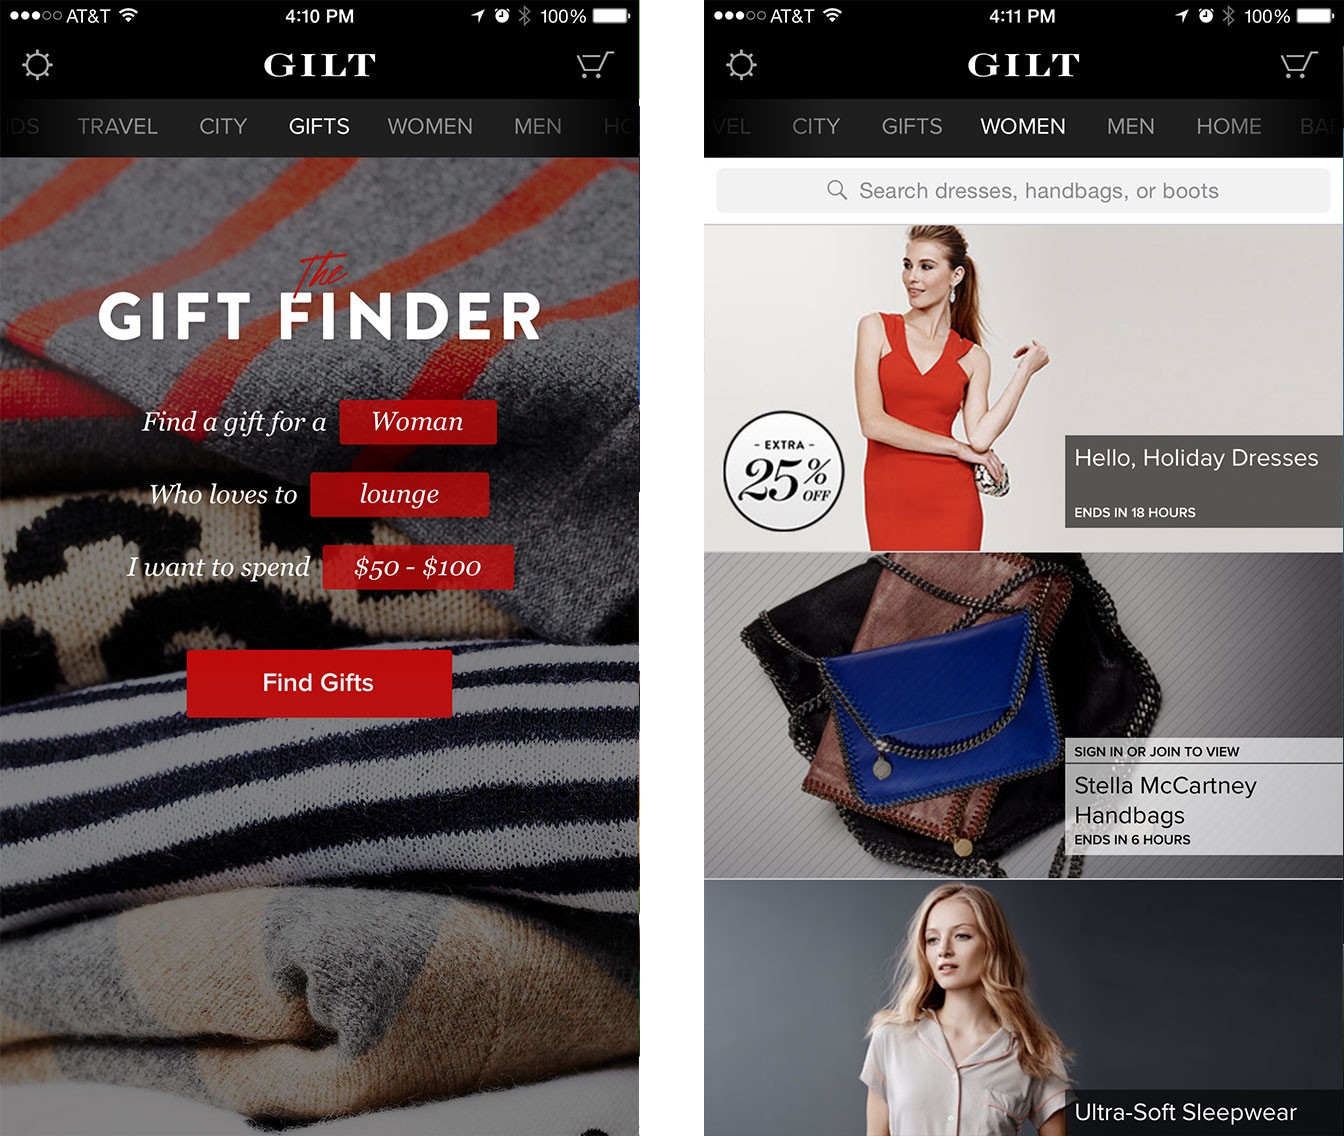 Best holiday shopping apps for iPhone and iPad: Gilt